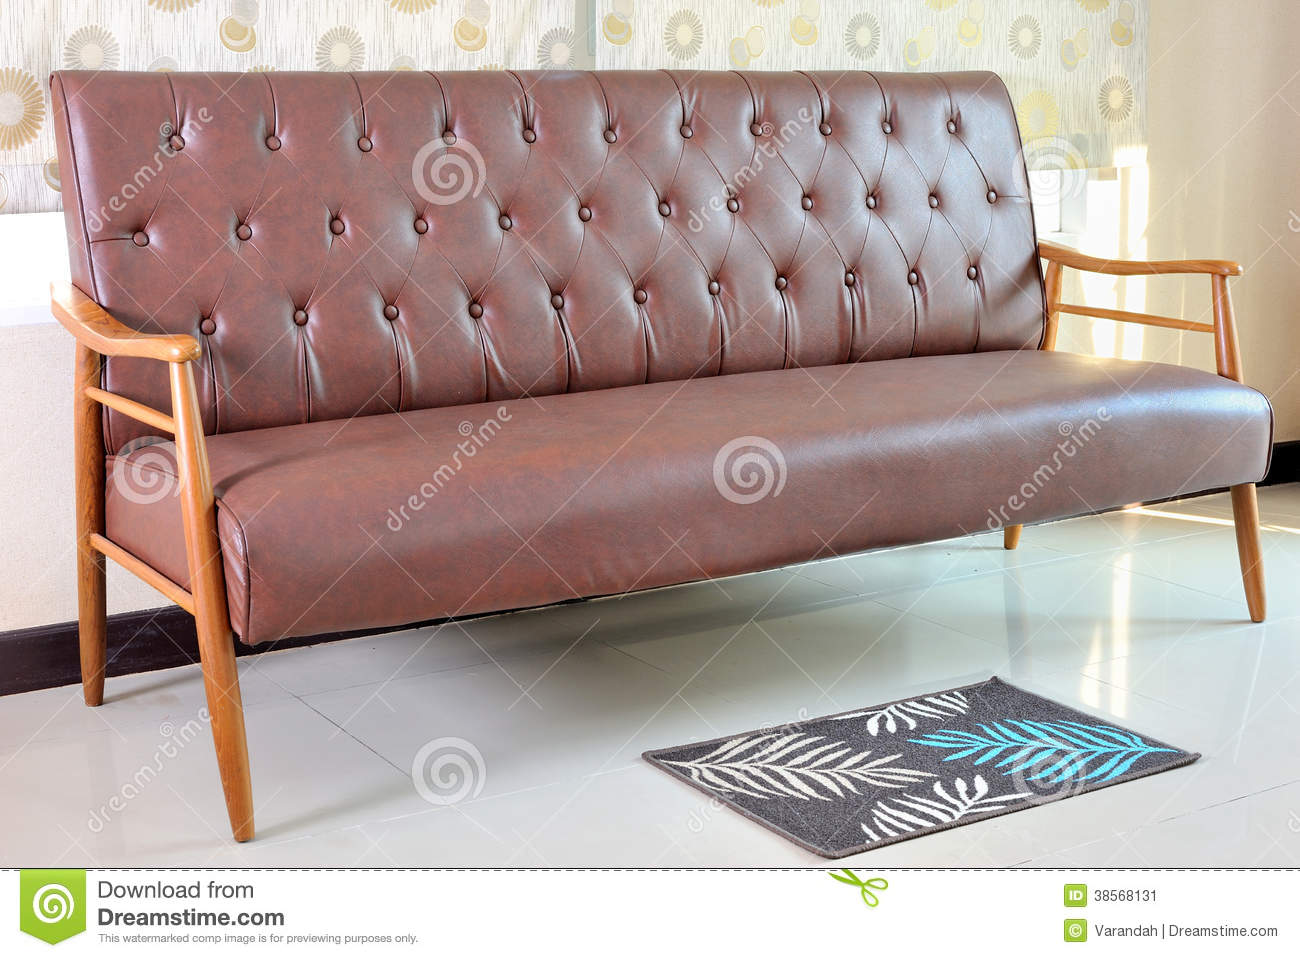 Retro Sofa Leather Retro Leather Sofa In Room Stock Image Image Of Room 38568131